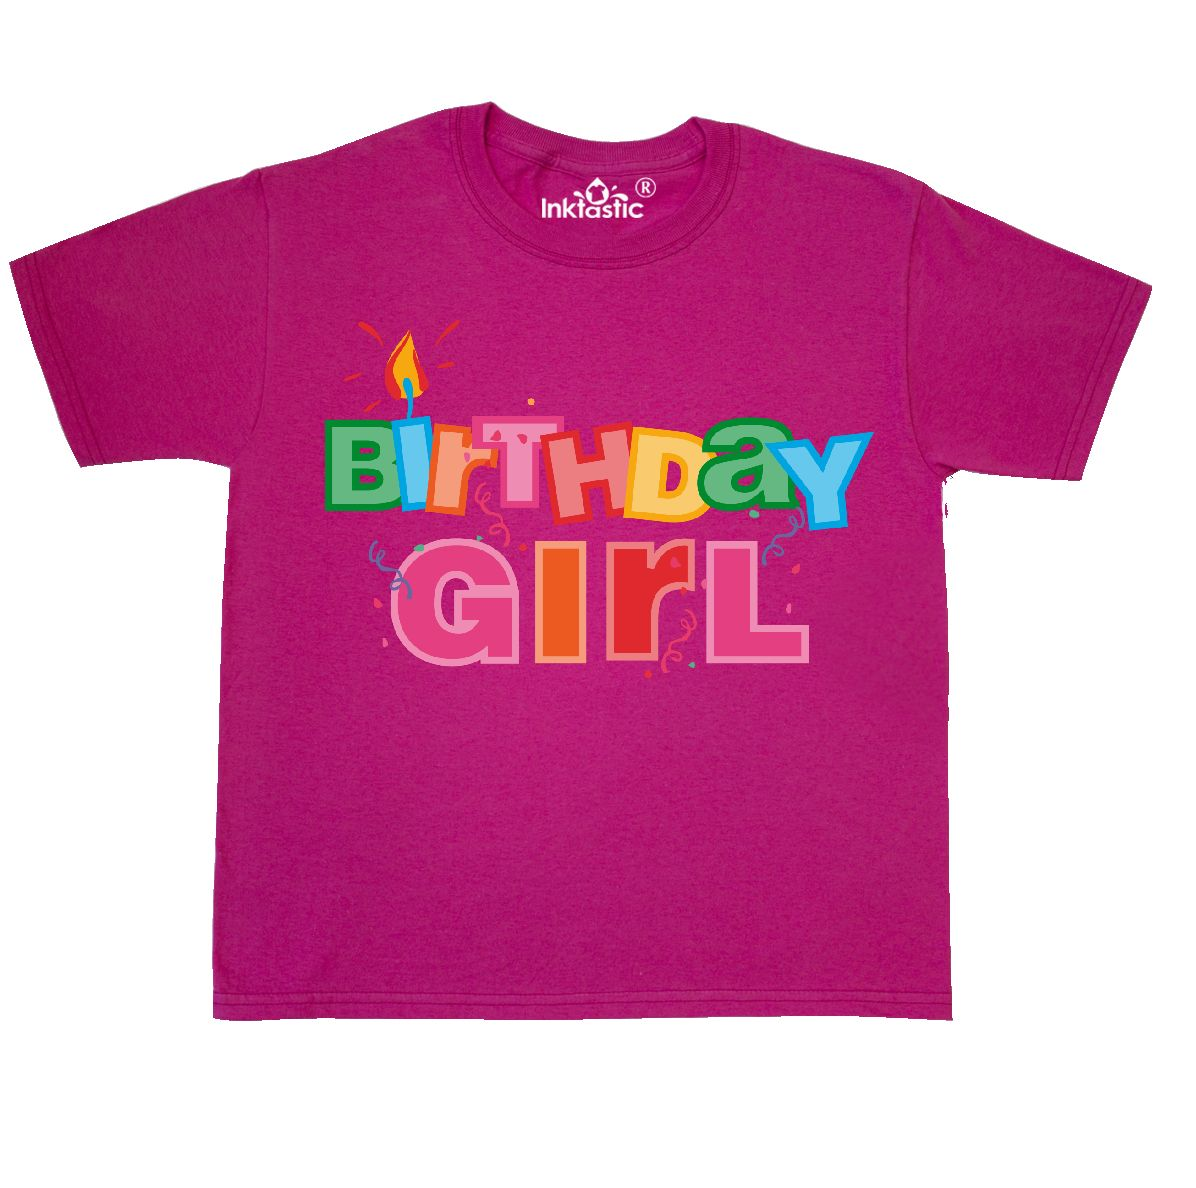 INKtastic Birthday Girl Letters Youth T-shirt Party Colorful Candle ...